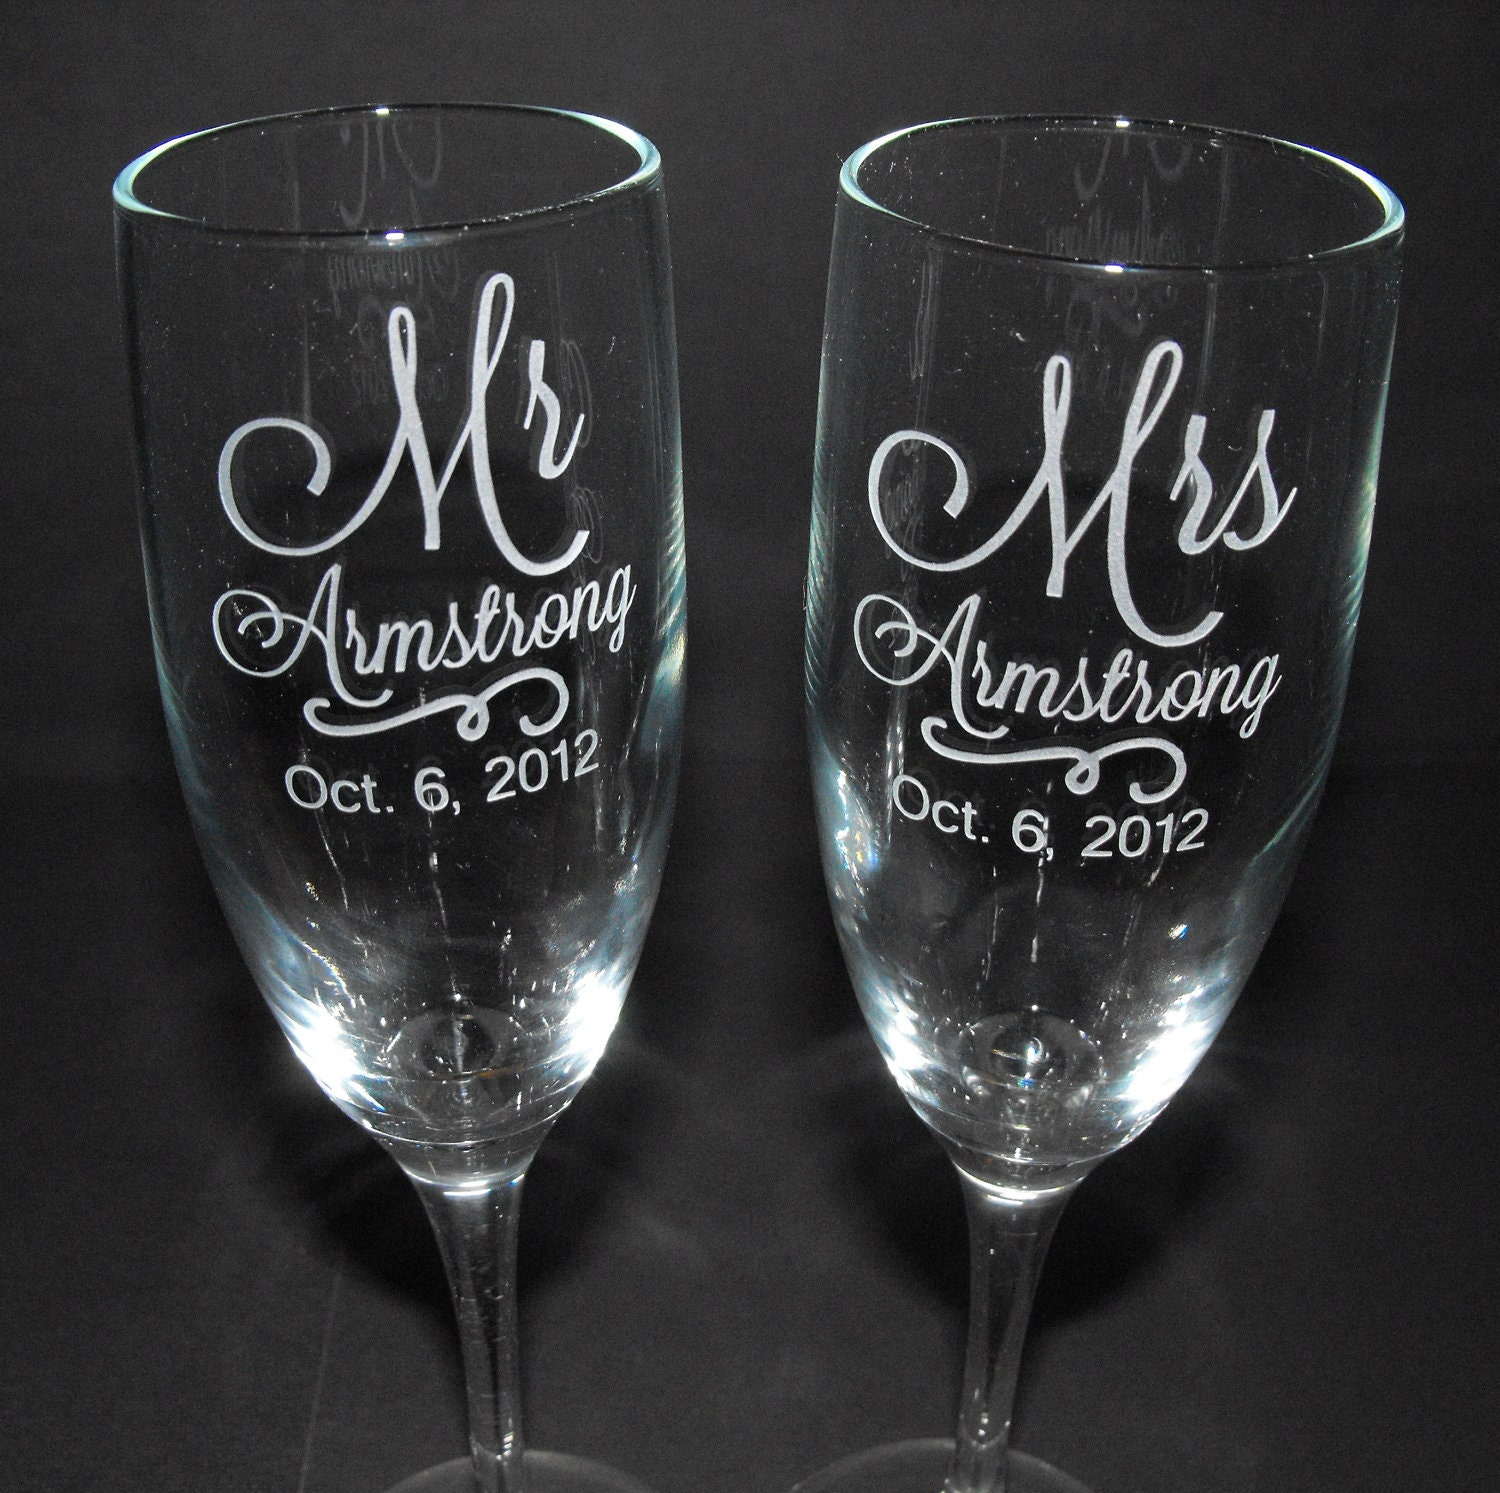 How Many Wine Glasses For Wedding Gift : Personalized Wedding Champagne Flutes CUSTOM ENGRAVED